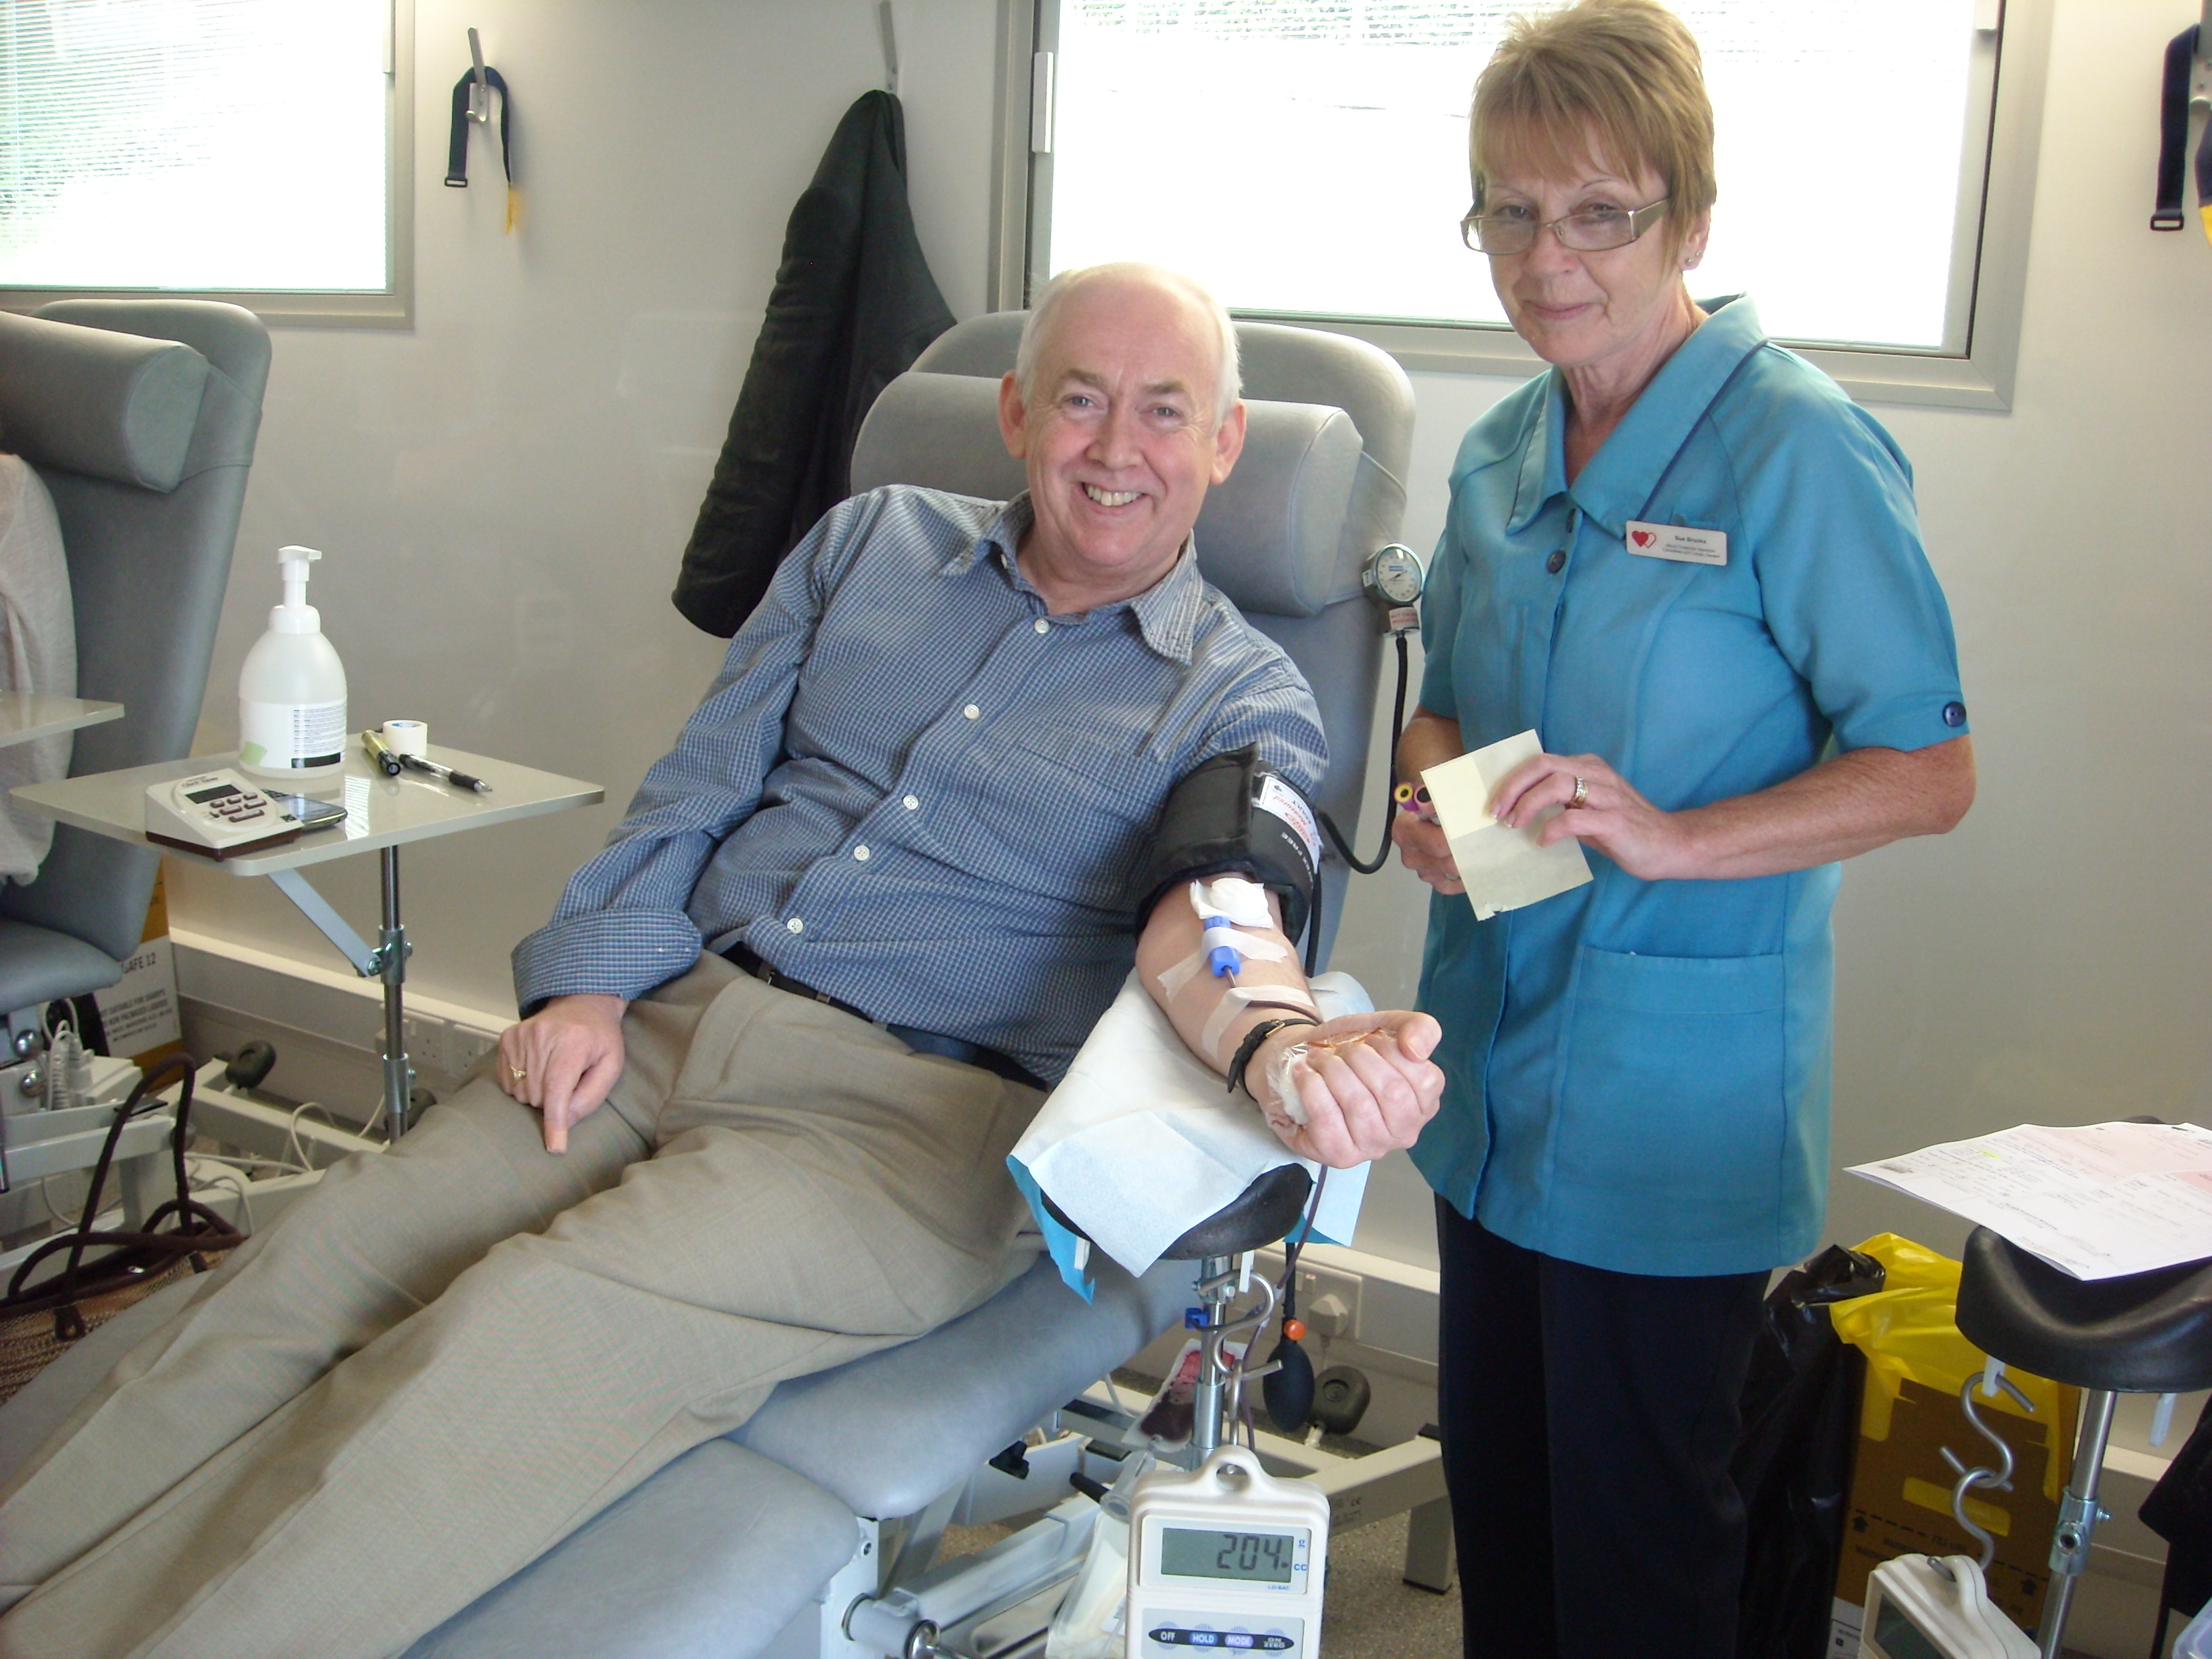 Wayne giving blood